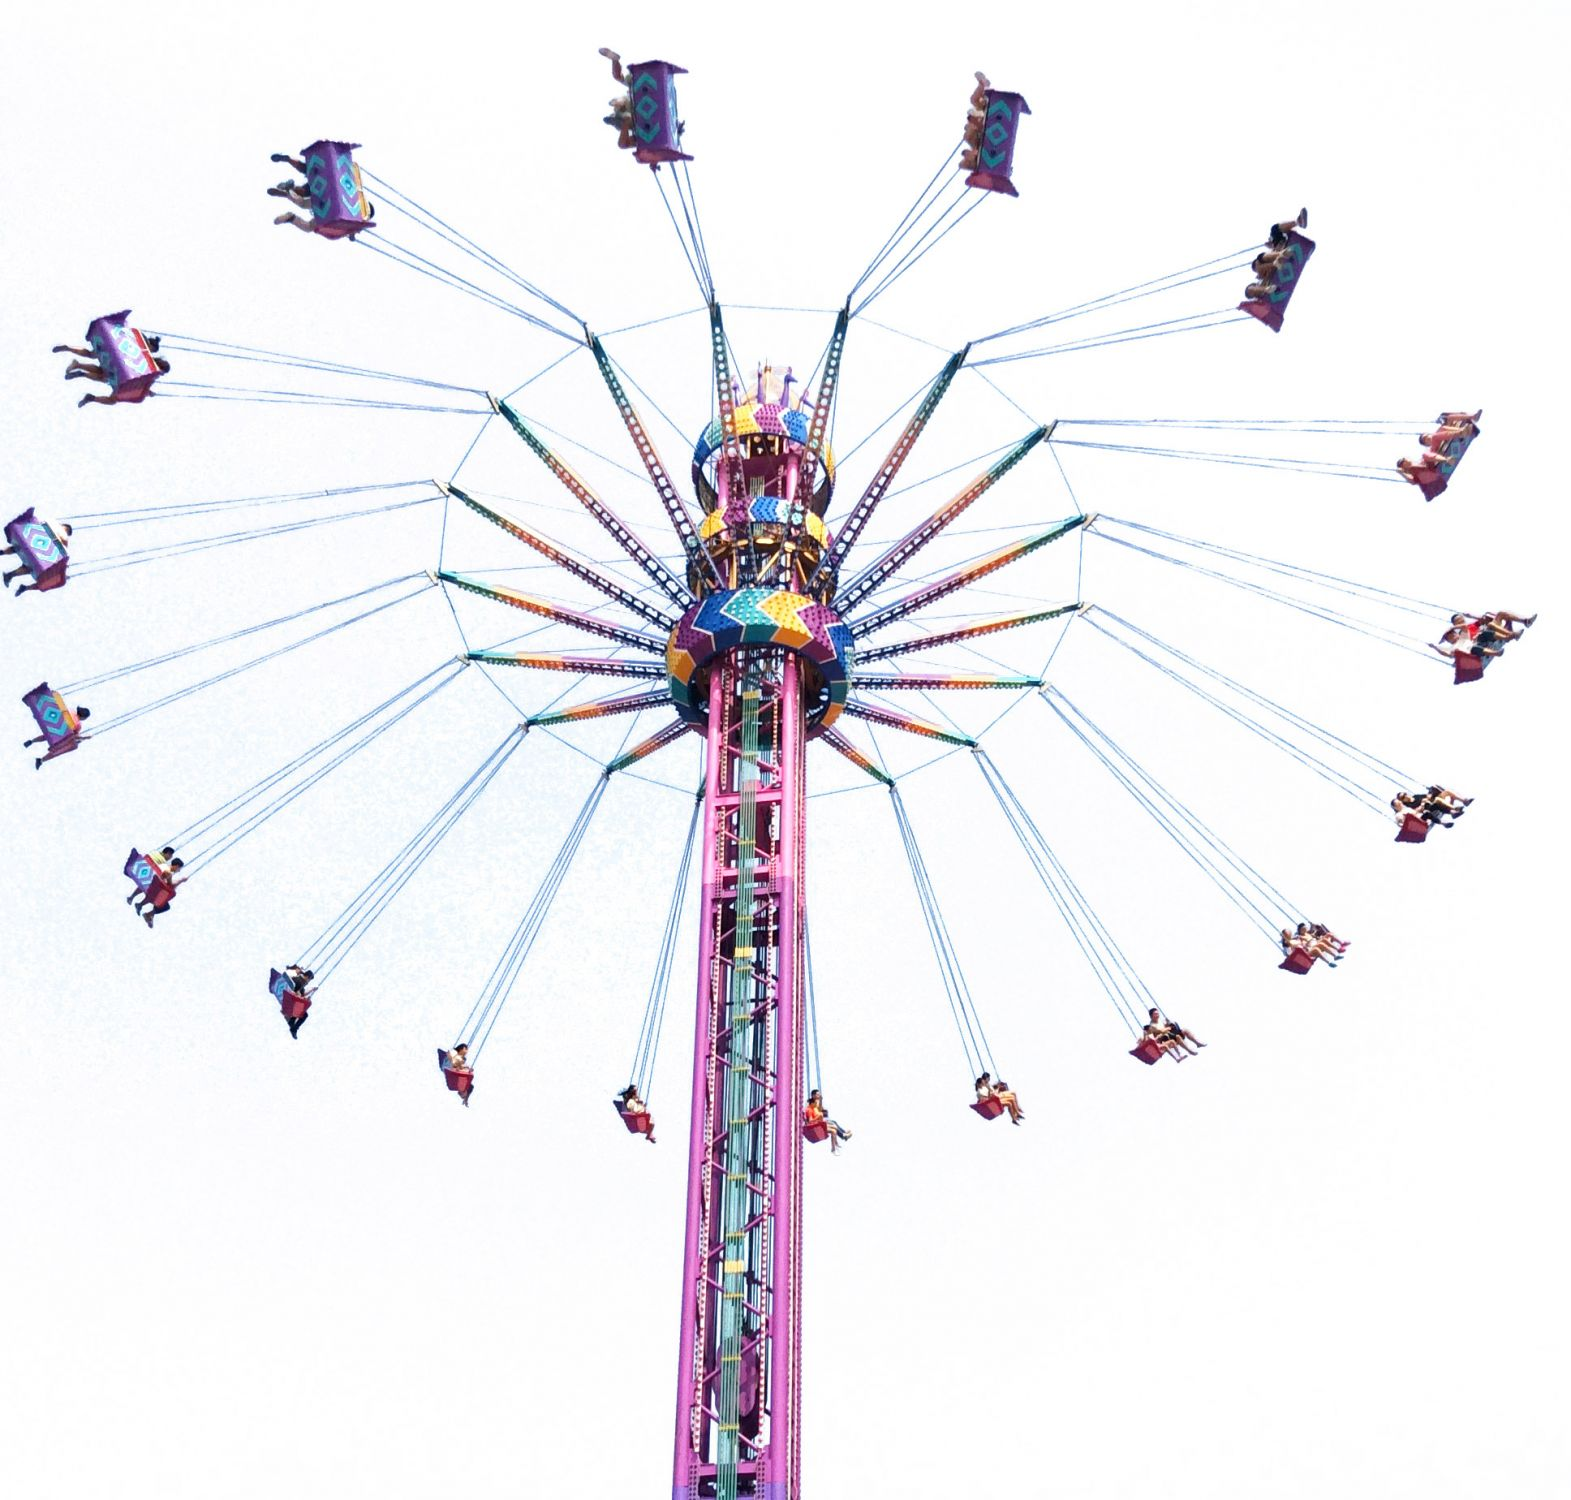 sky flyer amusement rides